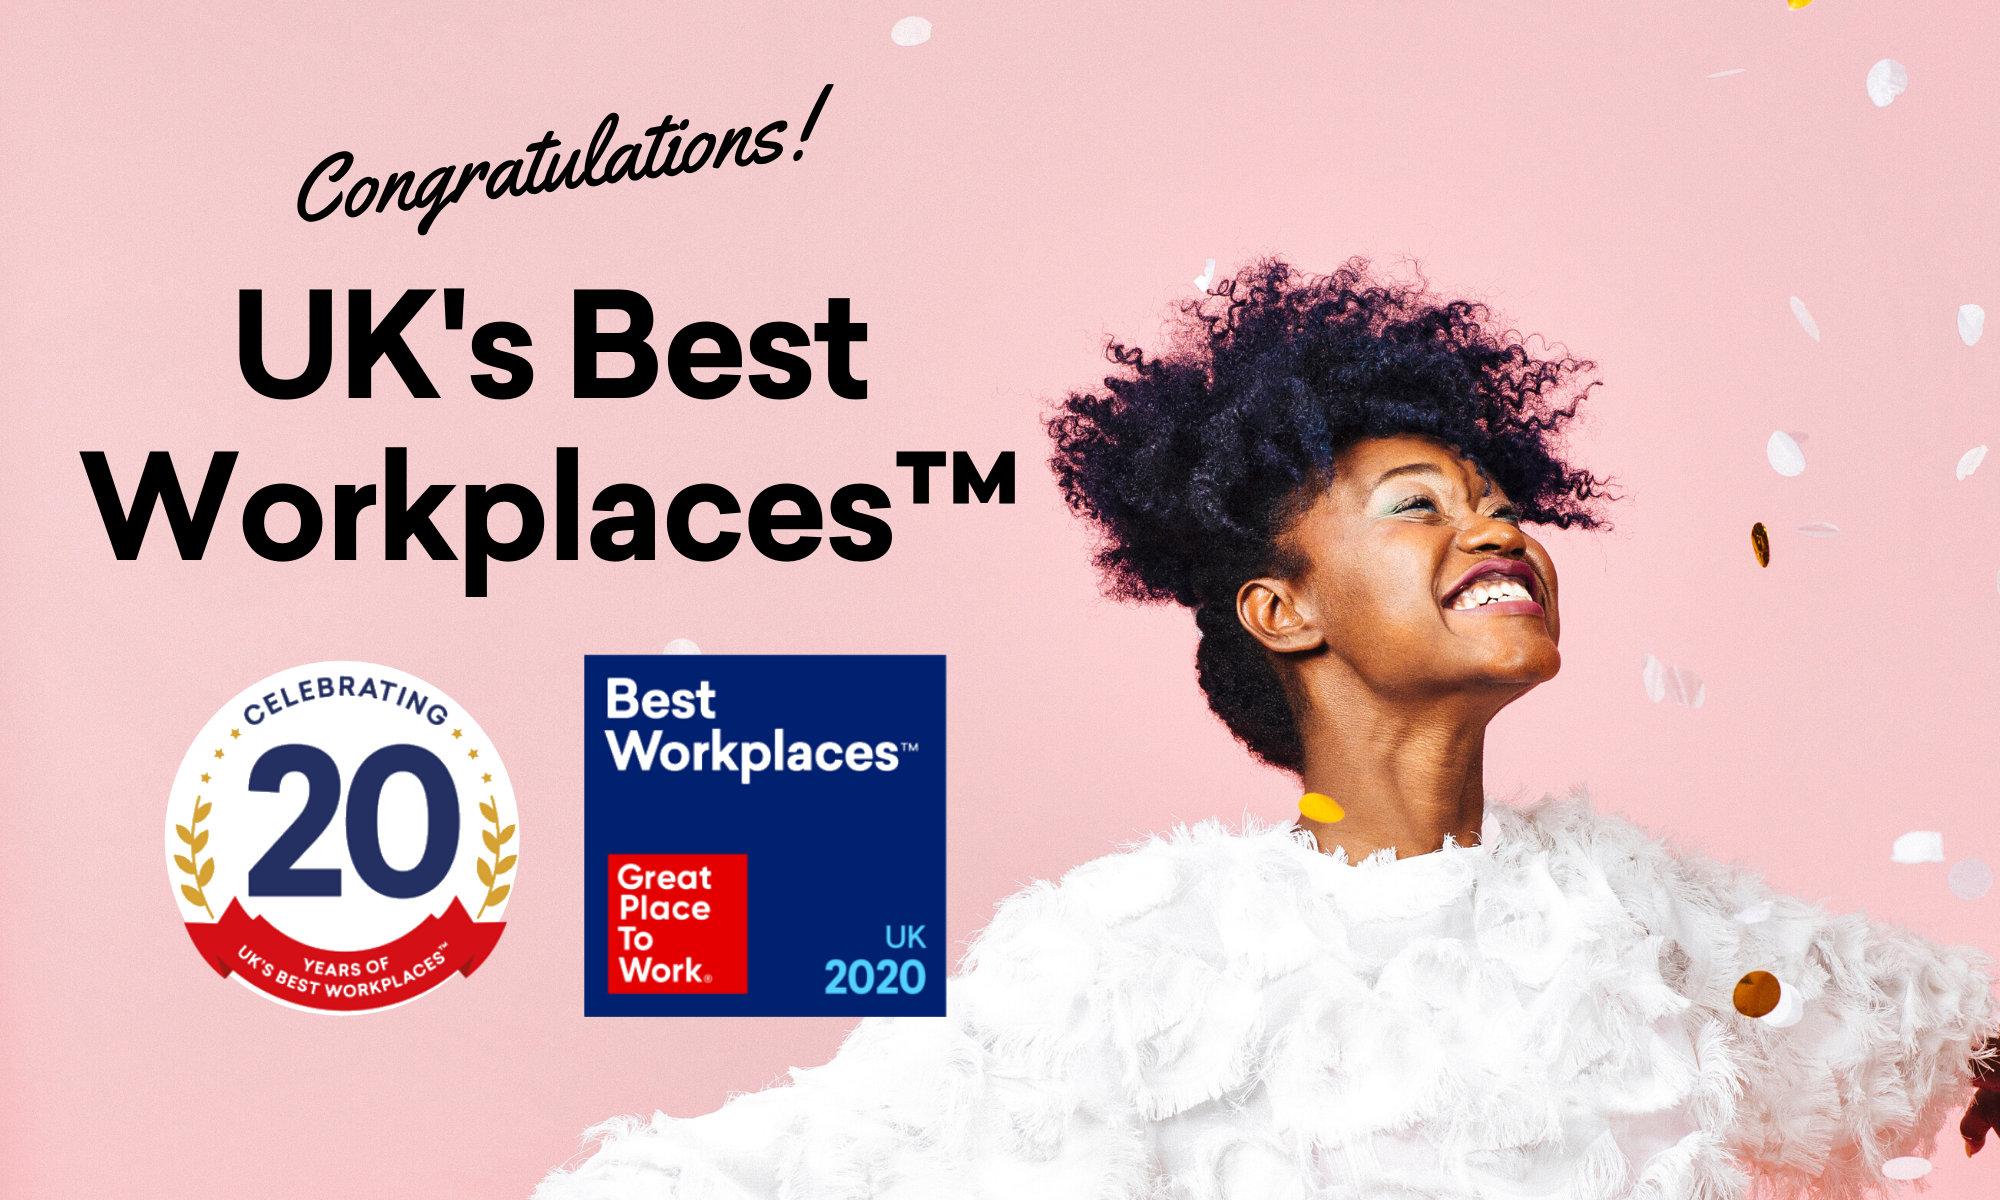 Announced: UK's Best Workplaces 2020